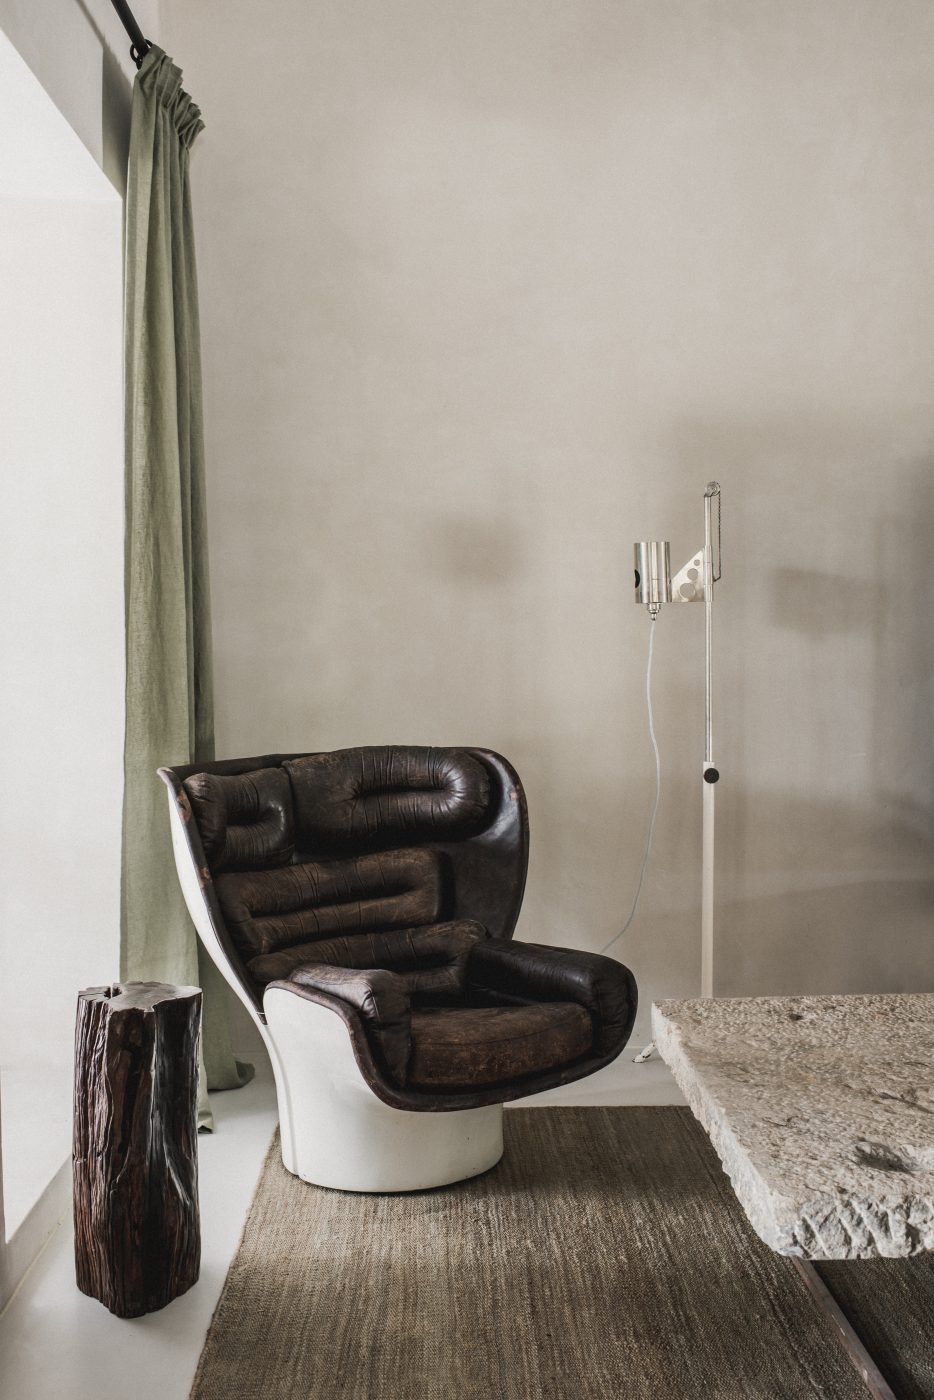 A Joe Colombo Elda Chair in a living room designed by Hollie Bowden